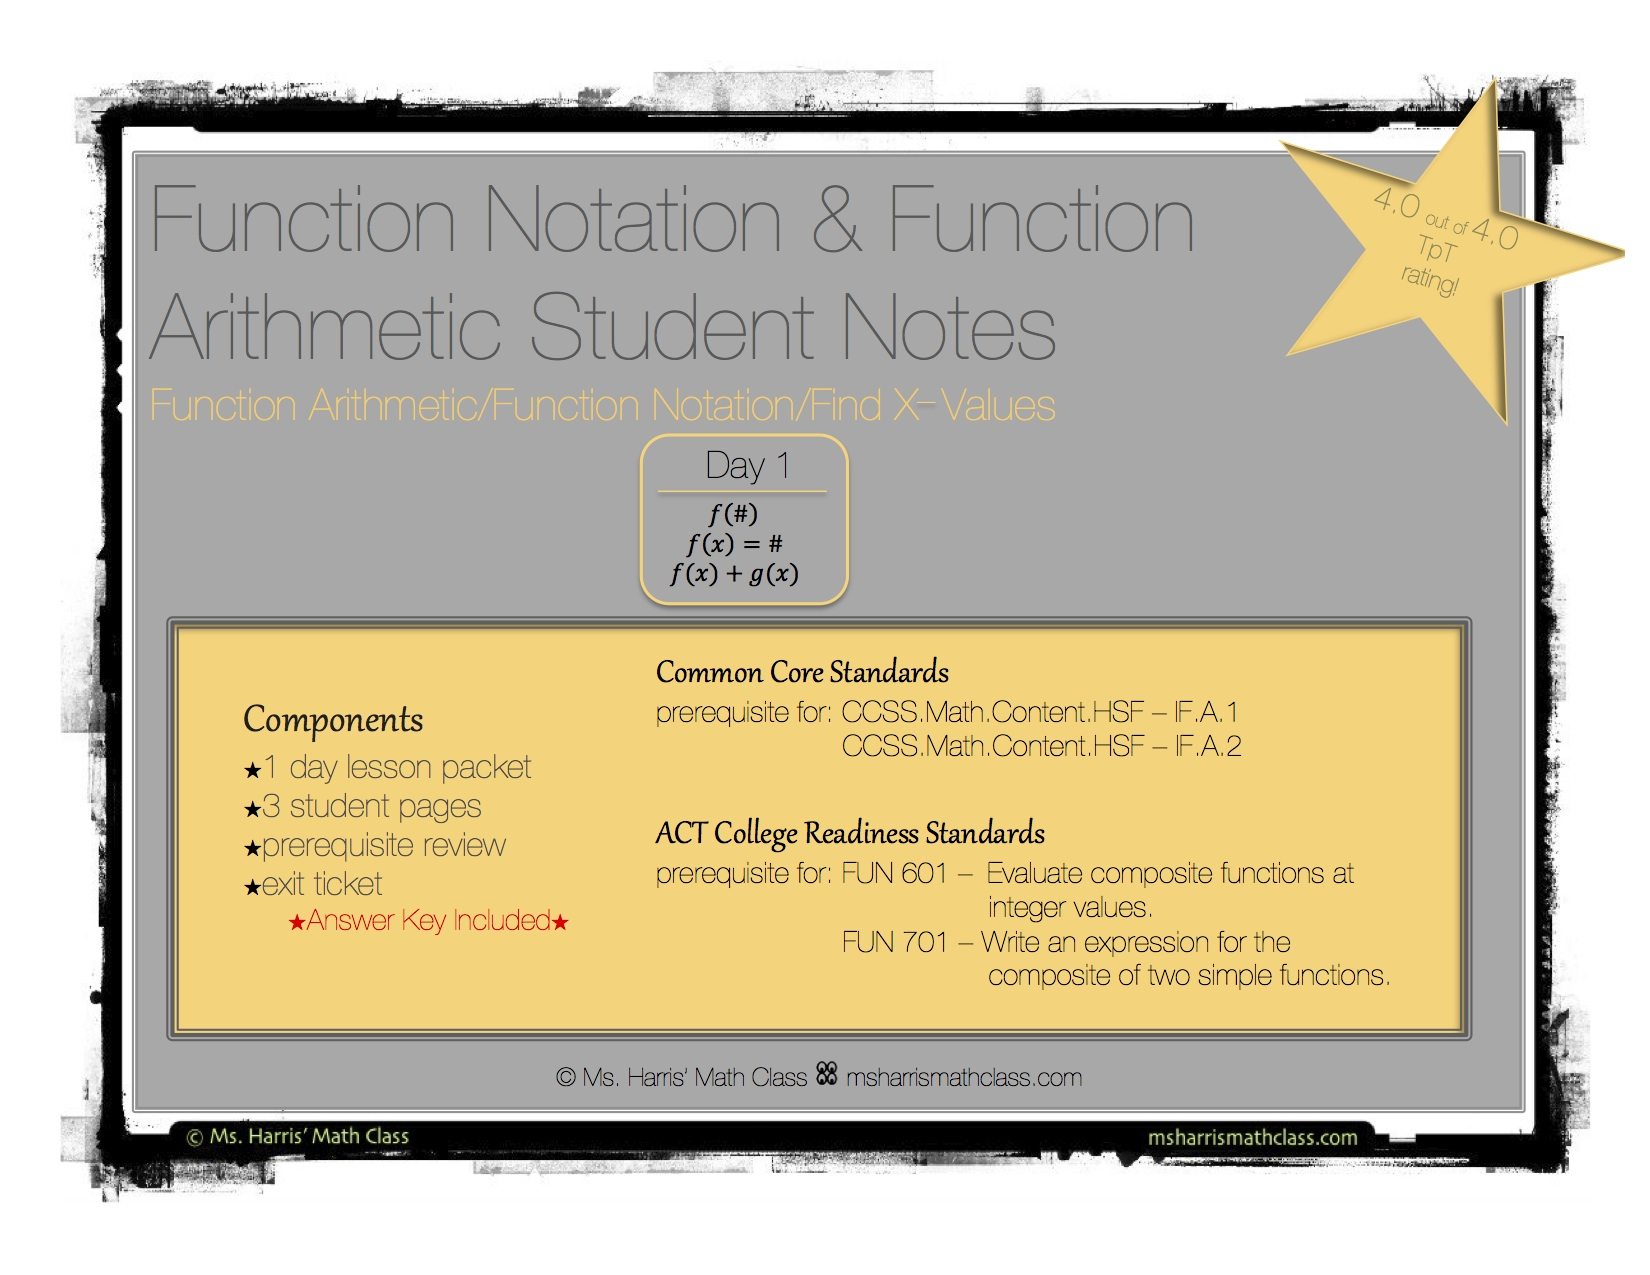 worksheet Function Notation Worksheet With Answers function notation arithmetic interactive student notes